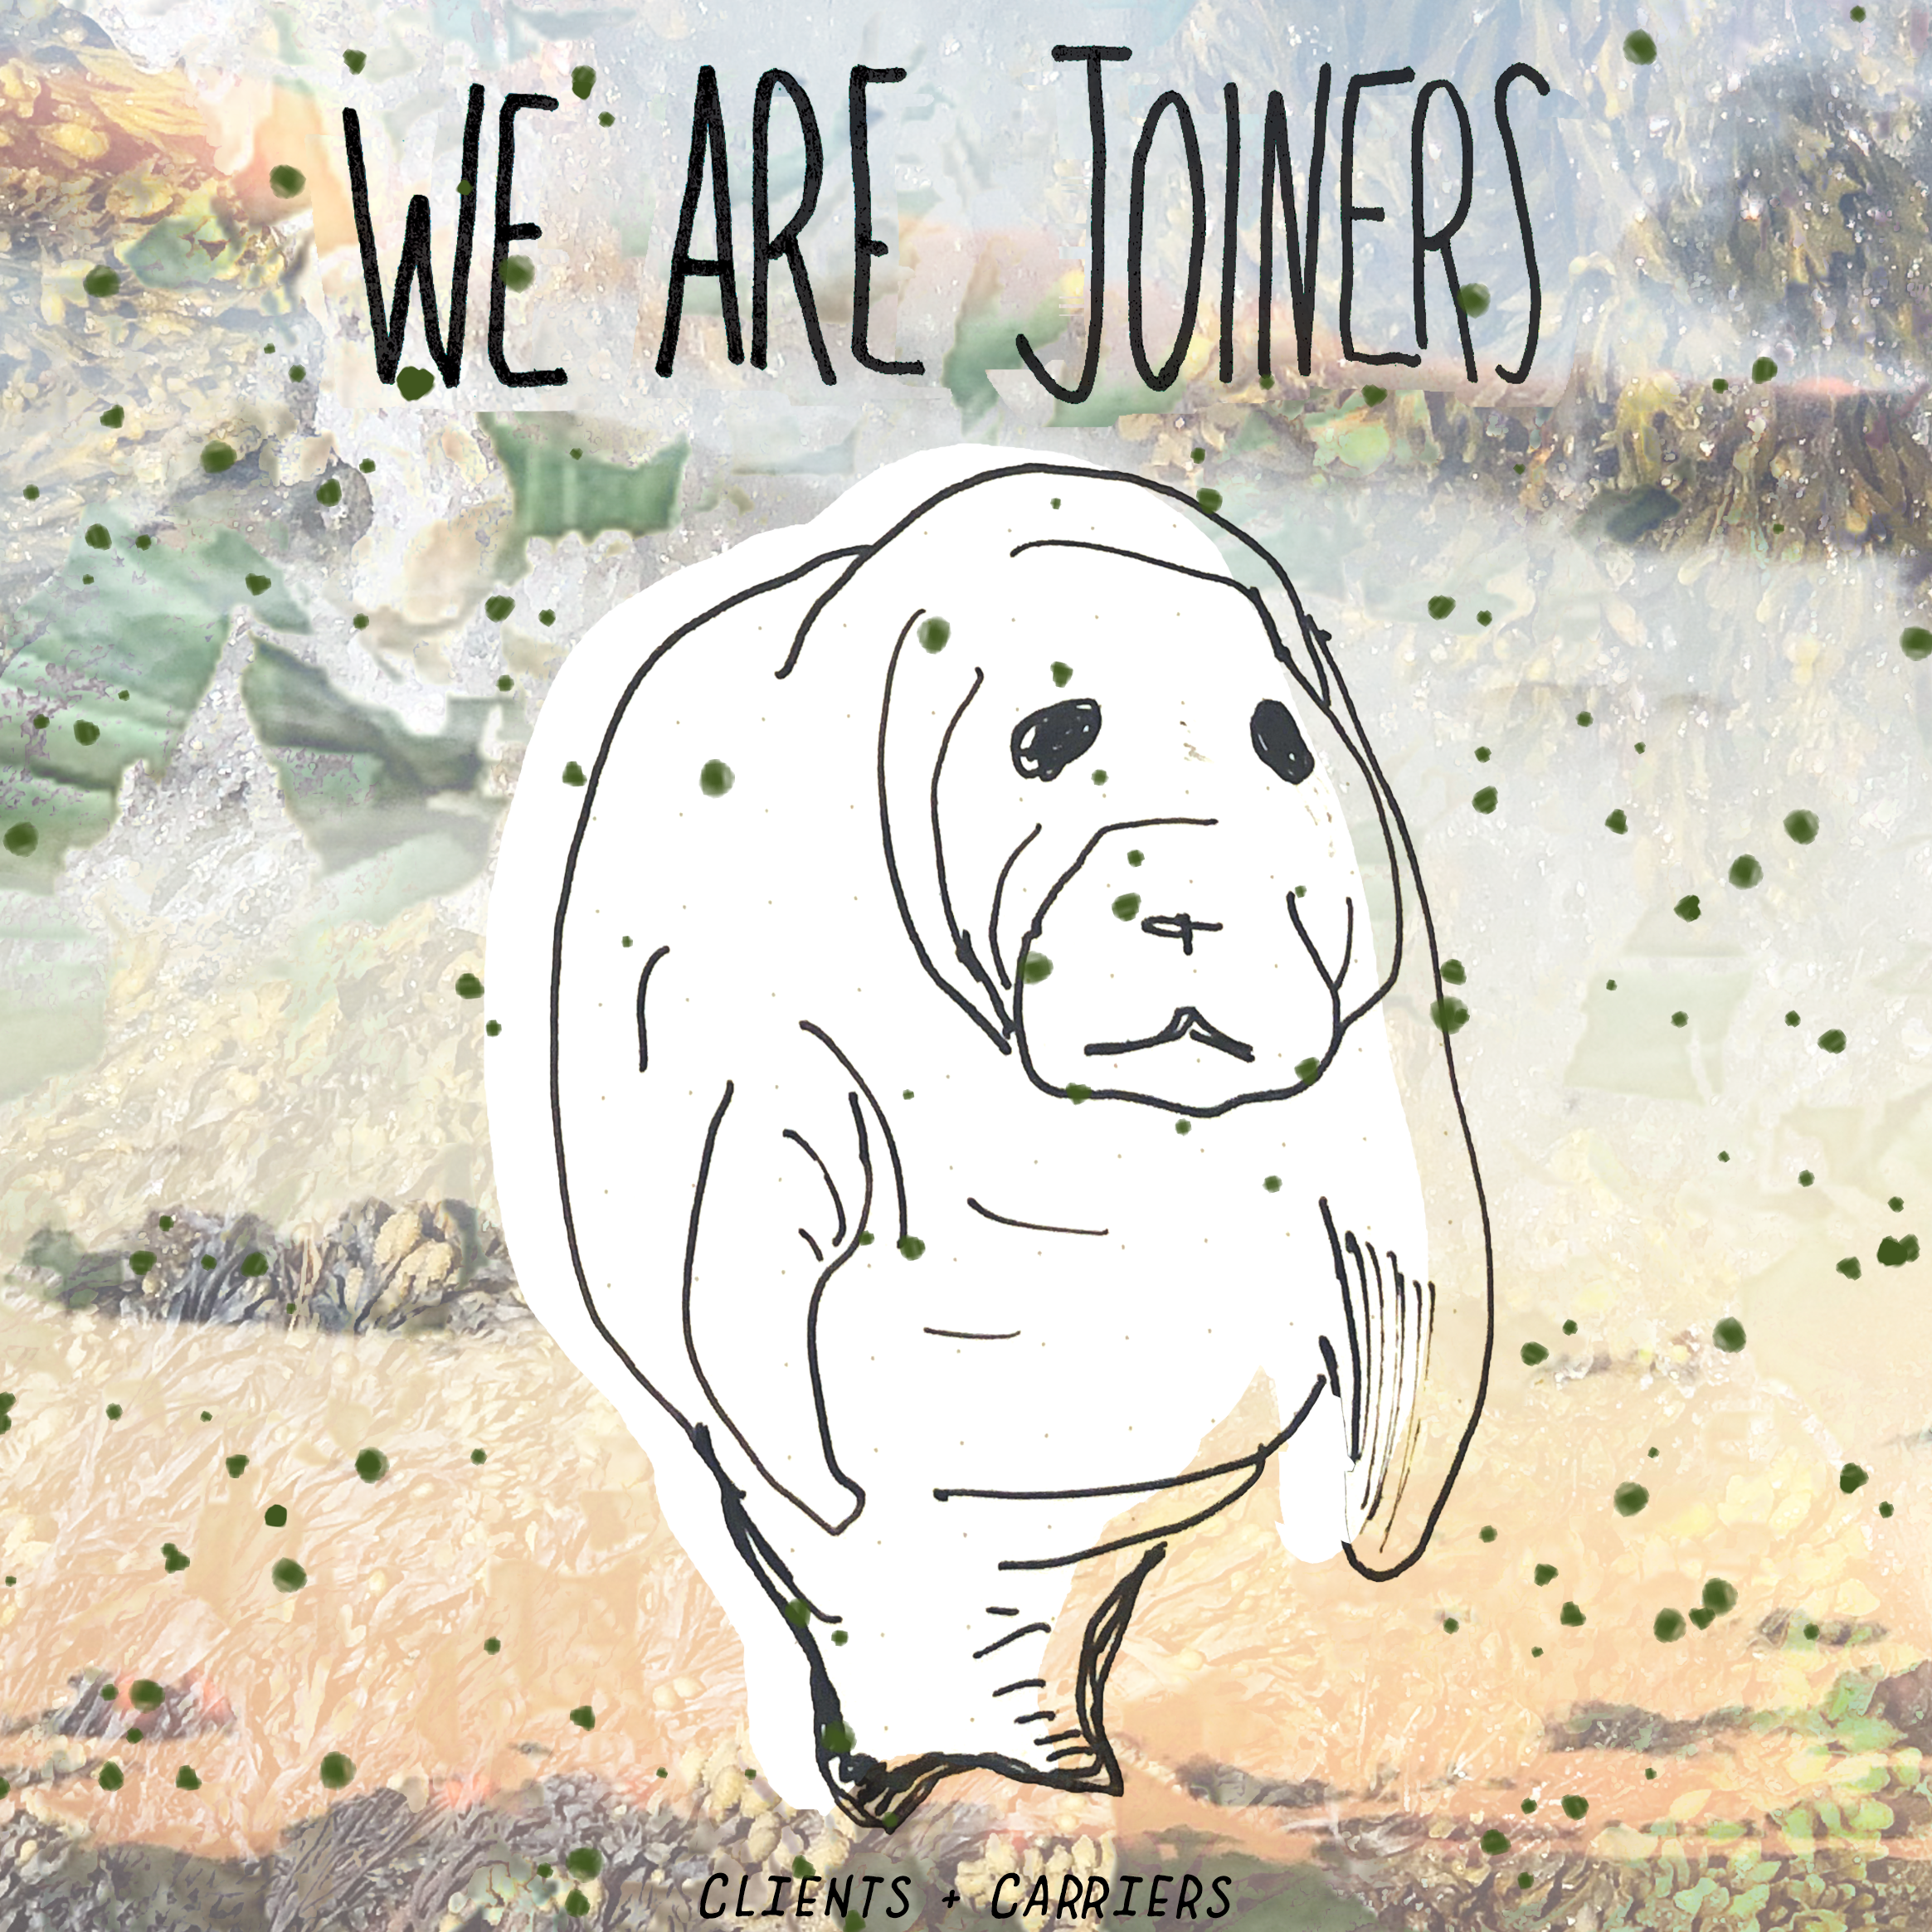 WE ARE JOINERS - Clients + Carriers